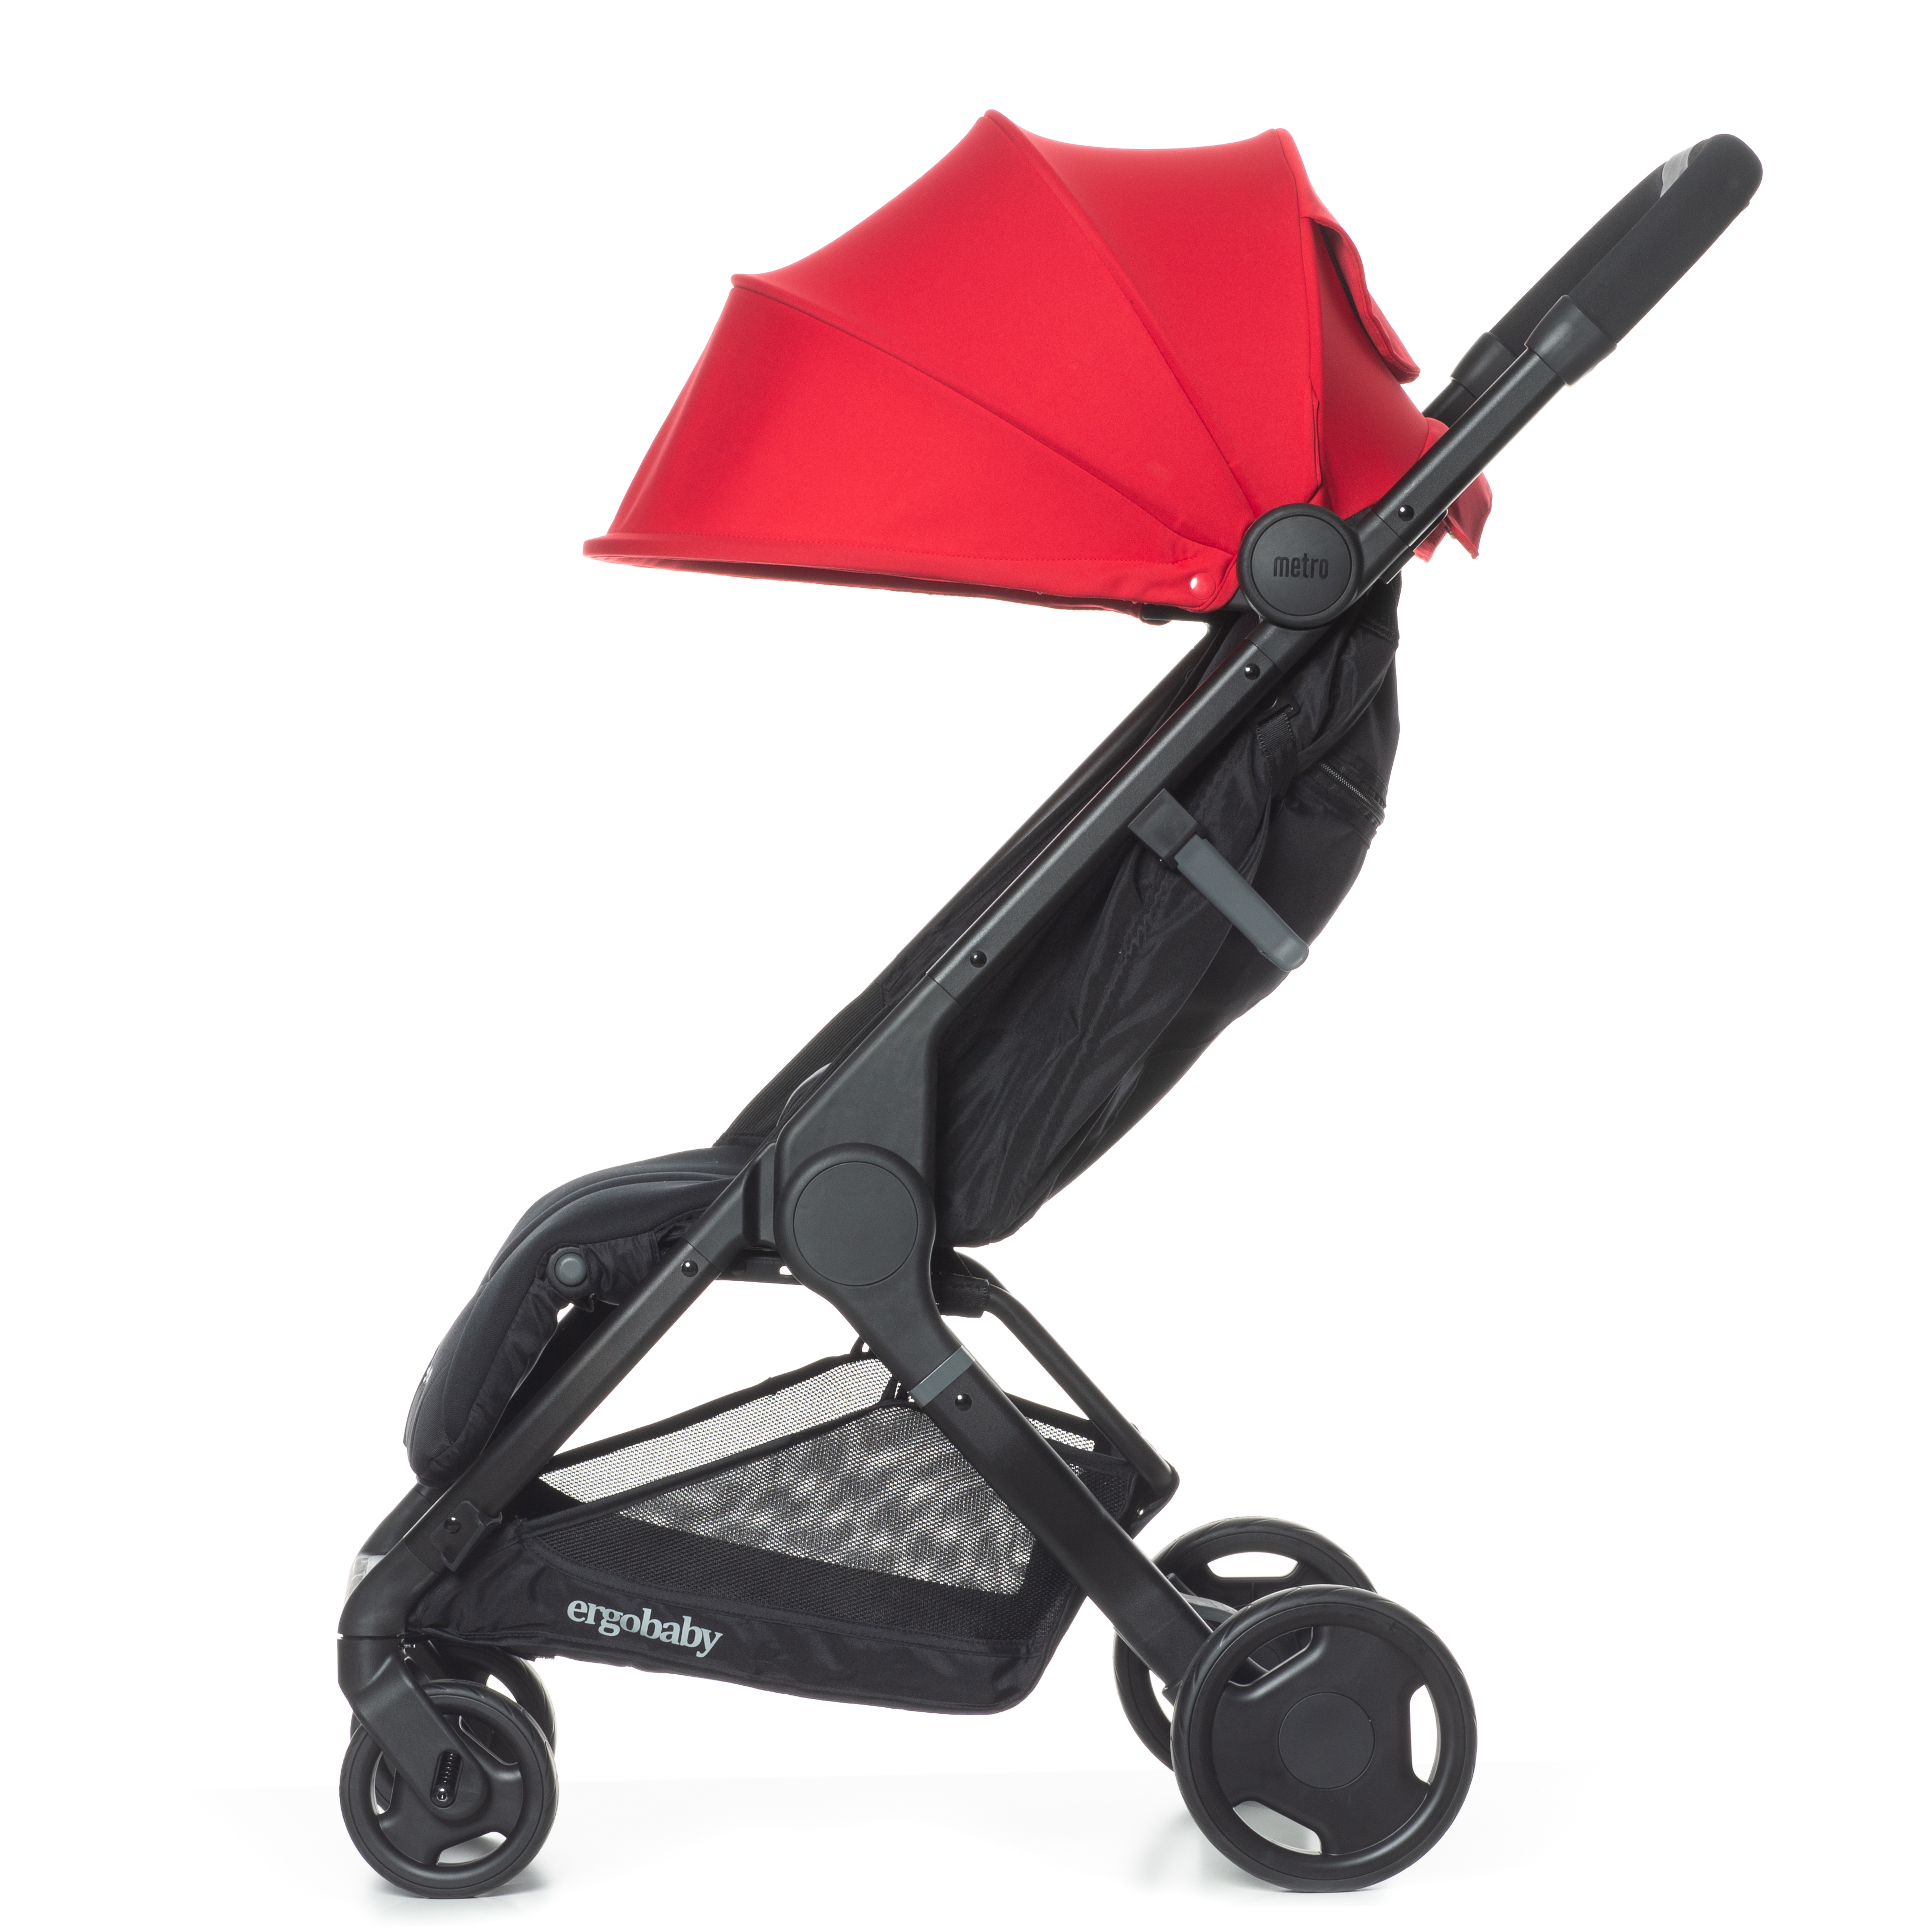 2385baeffa5 Home Travelling Ergobaby – Metro Compact City Stroller.   